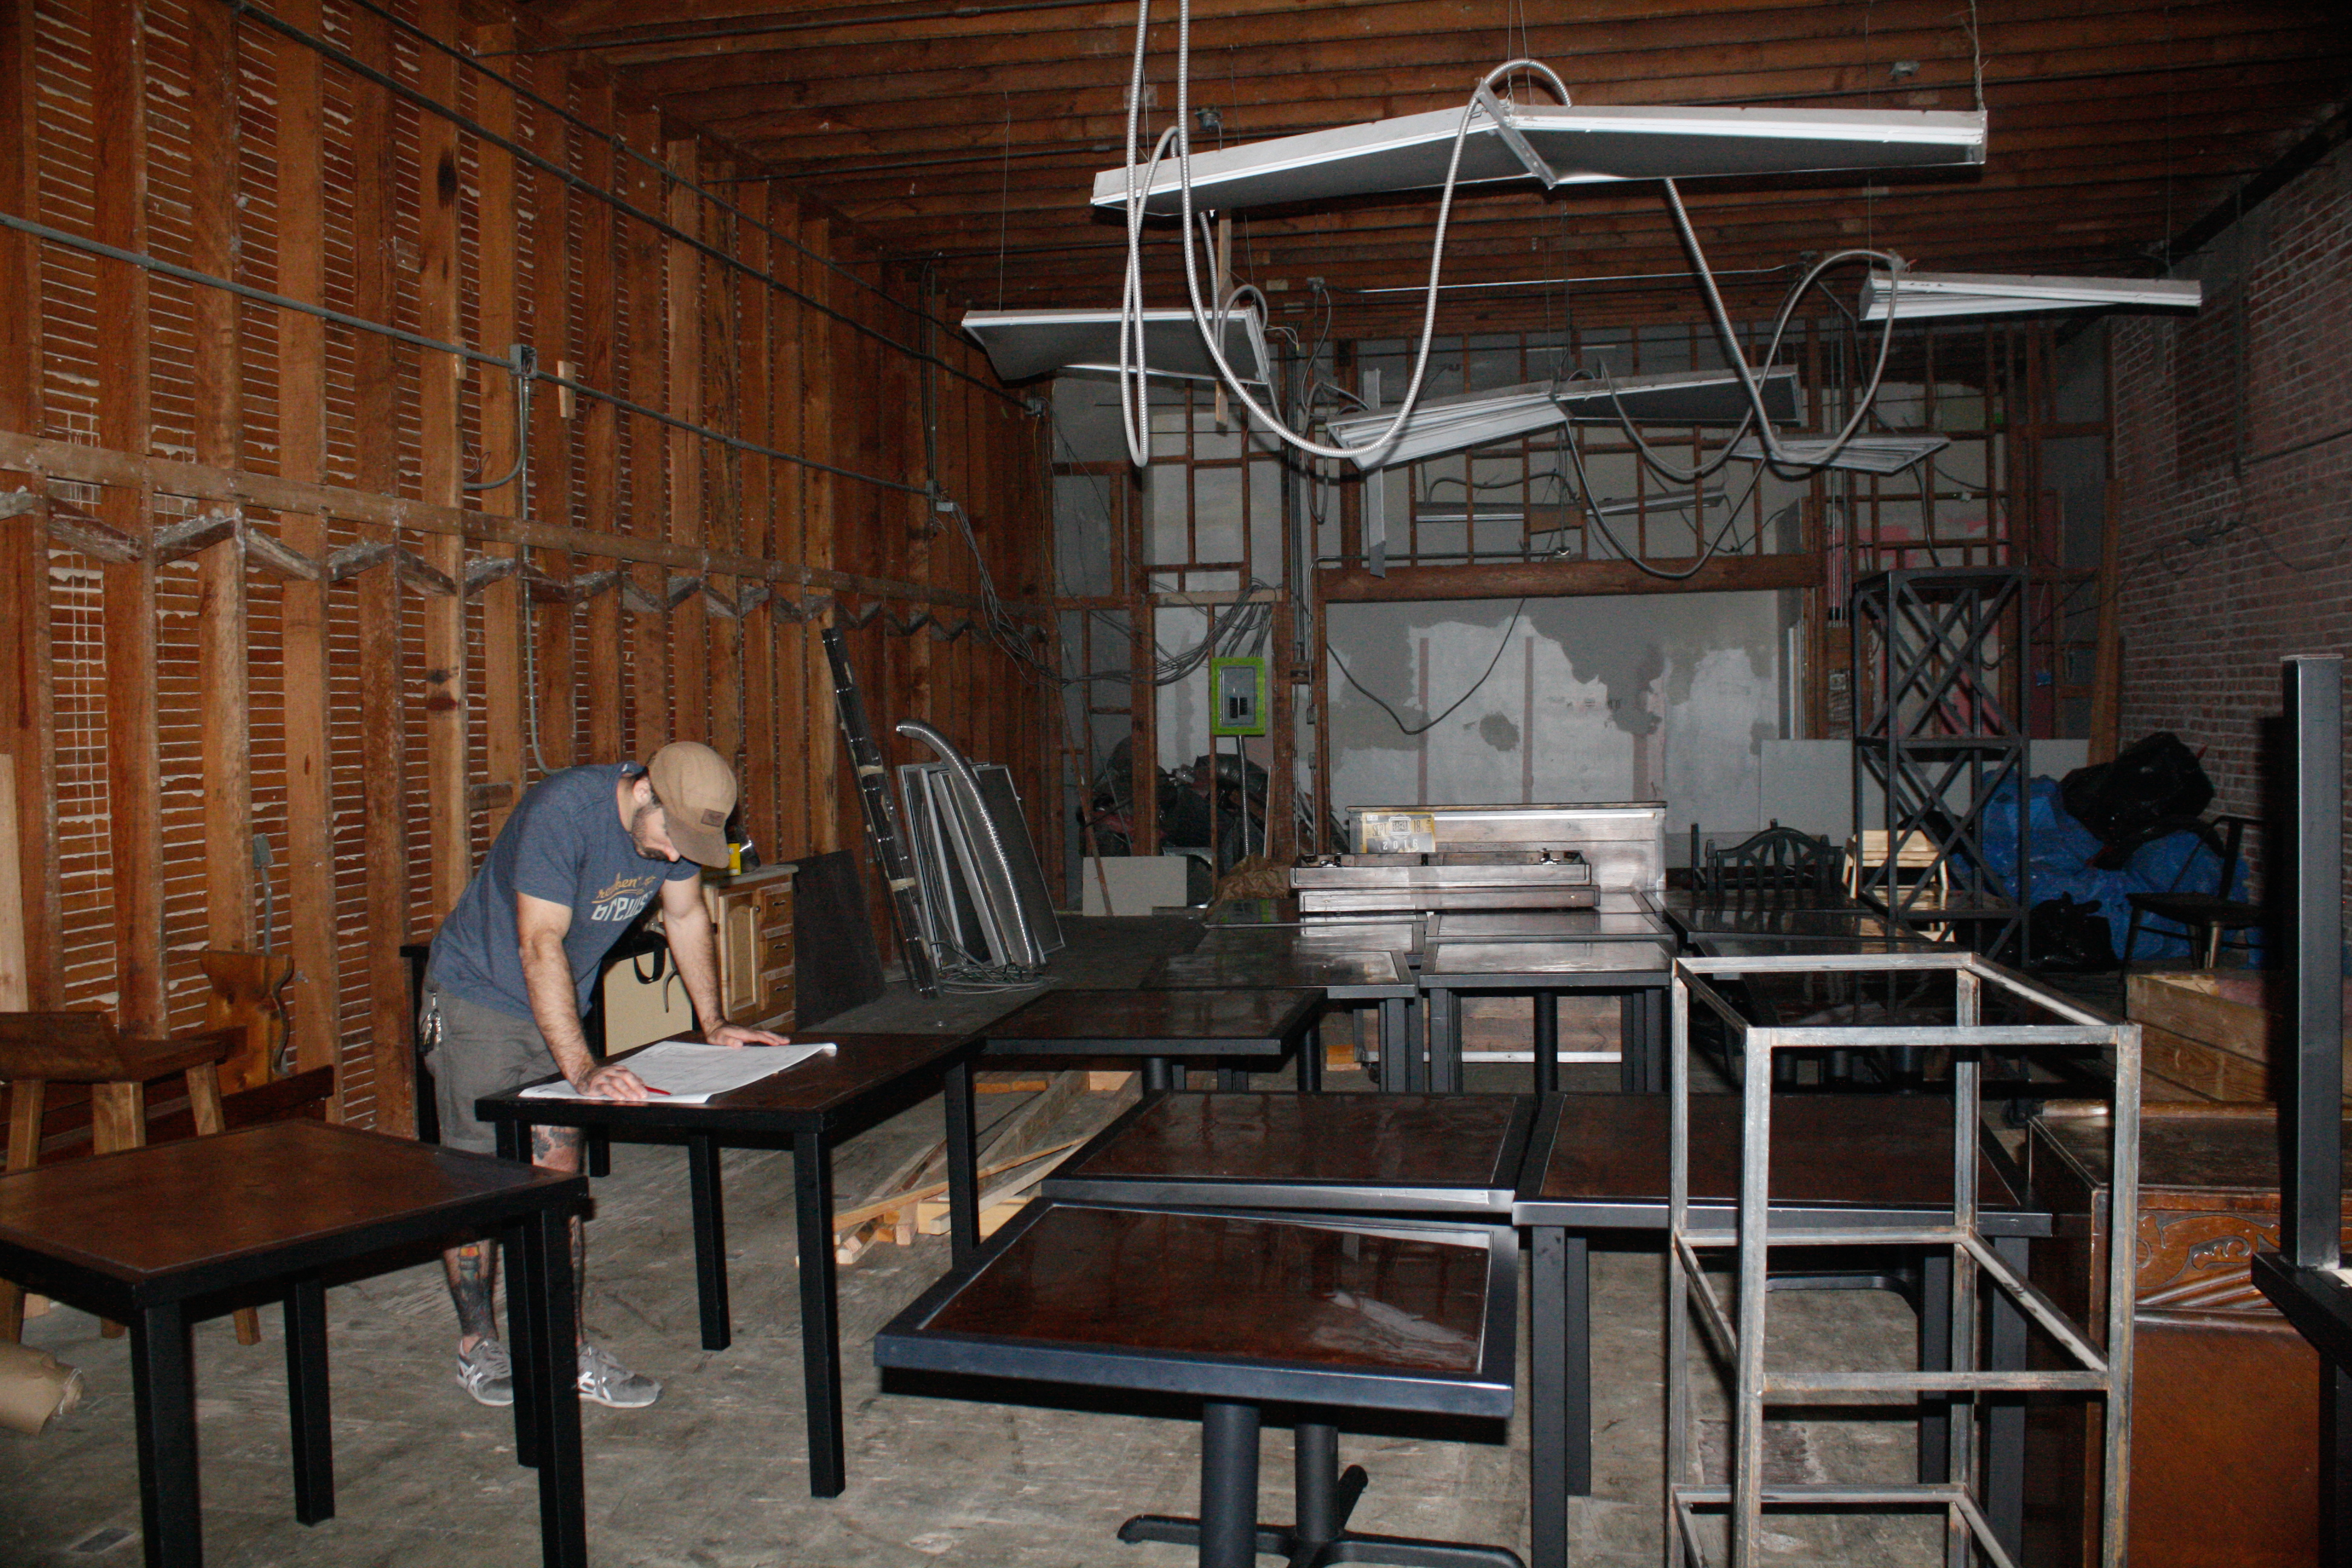 build-outs of summer lift coffee roasters whittier california sprudge